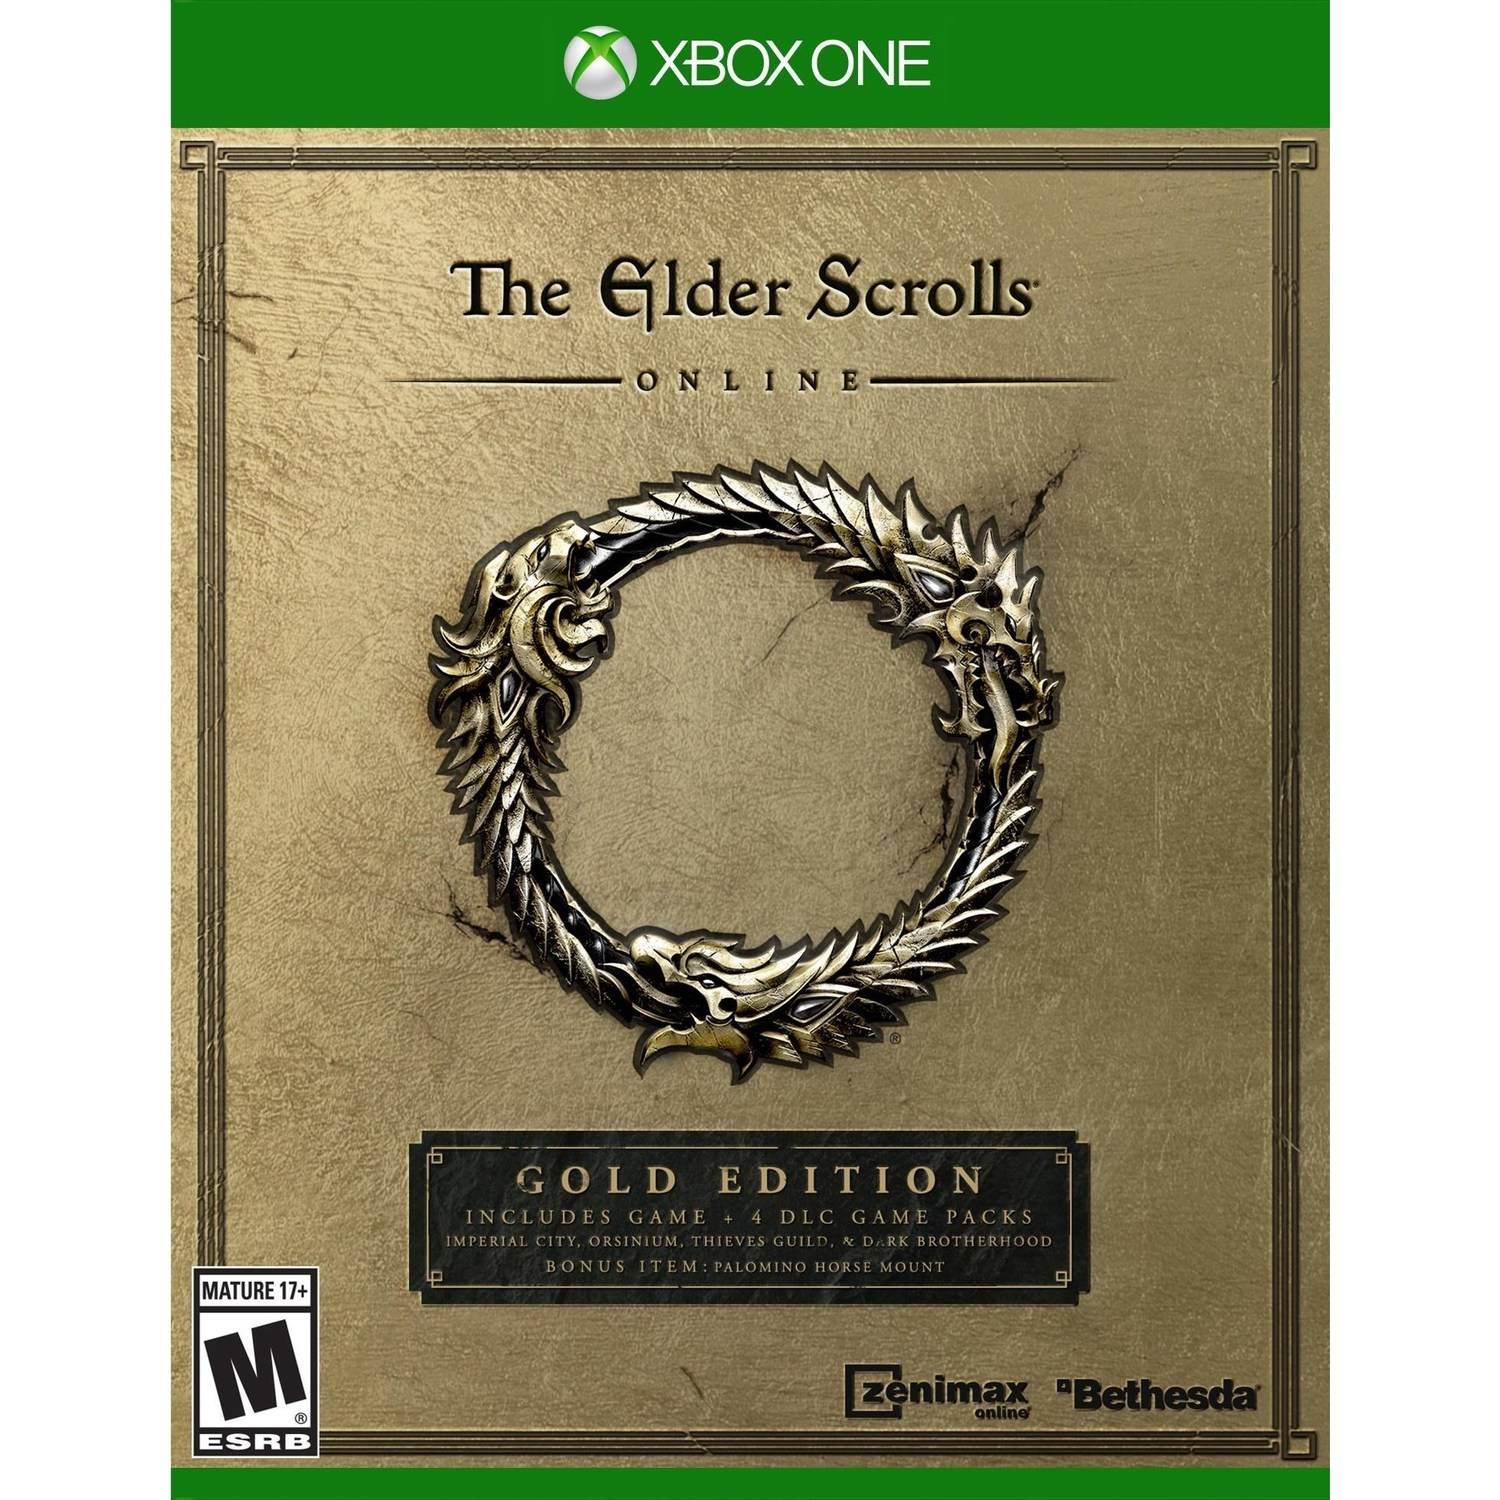 The Elder Scrolls Online: Gold Edition - Xbox One